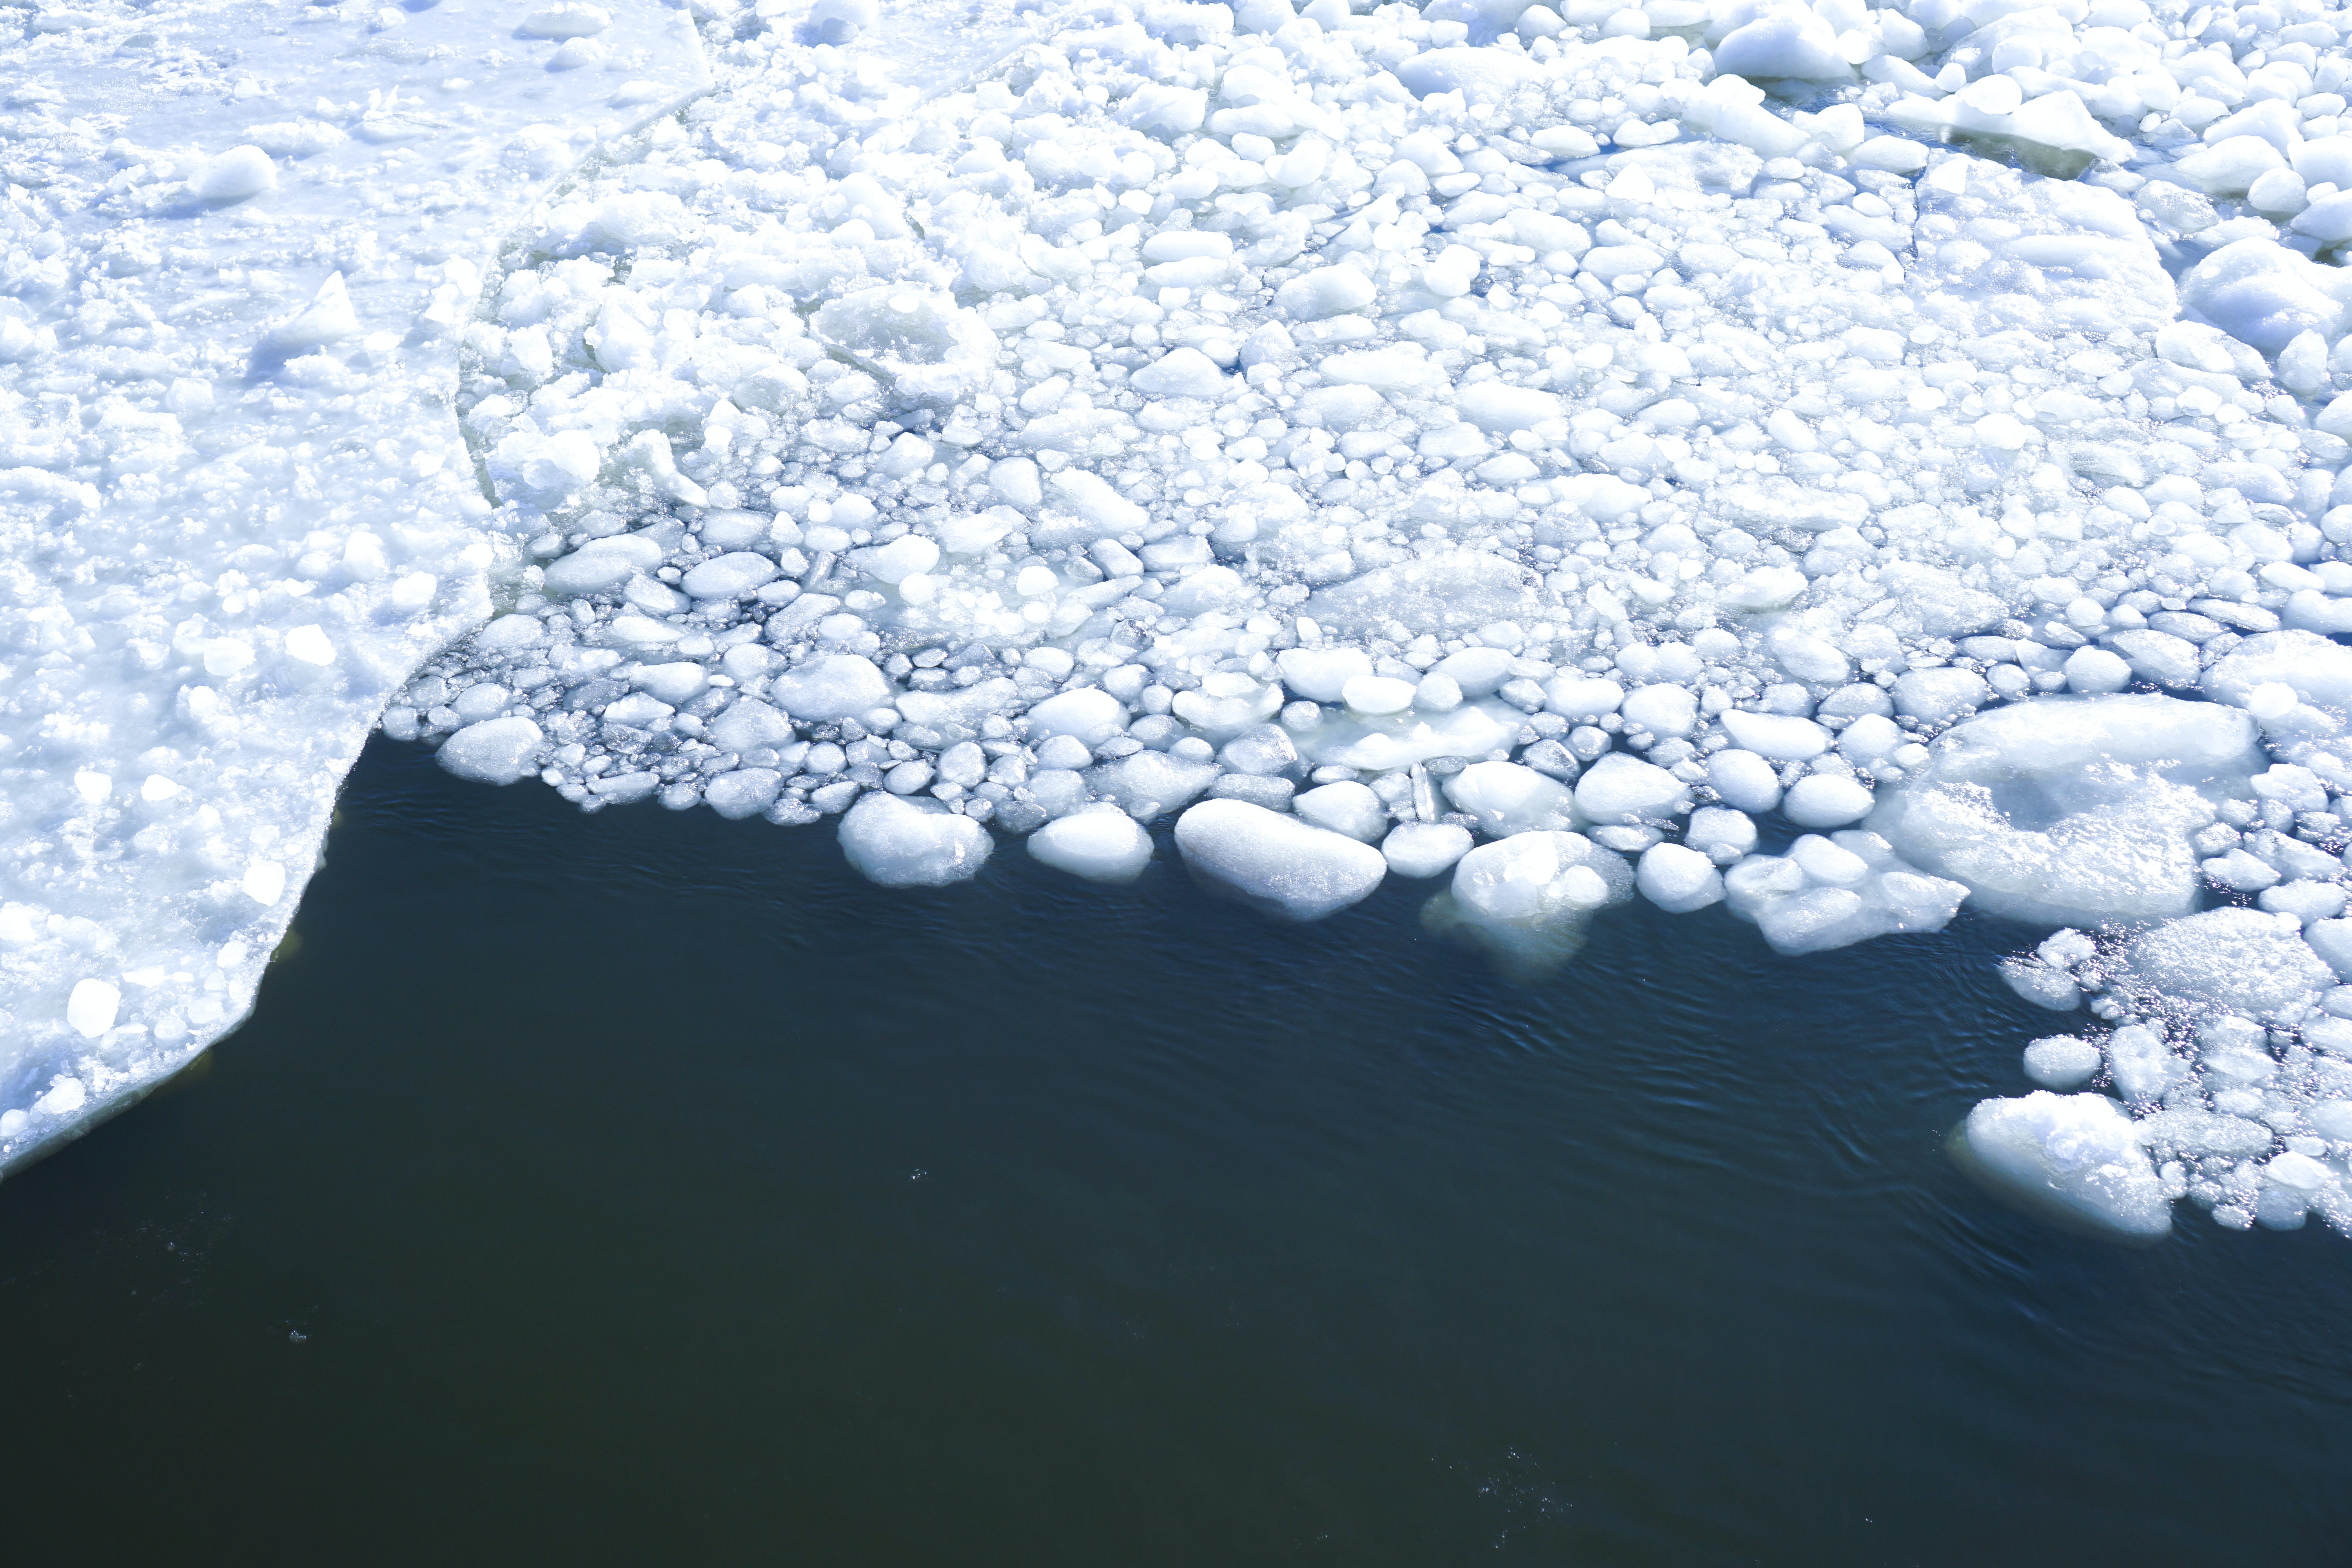 ice on water at daytime